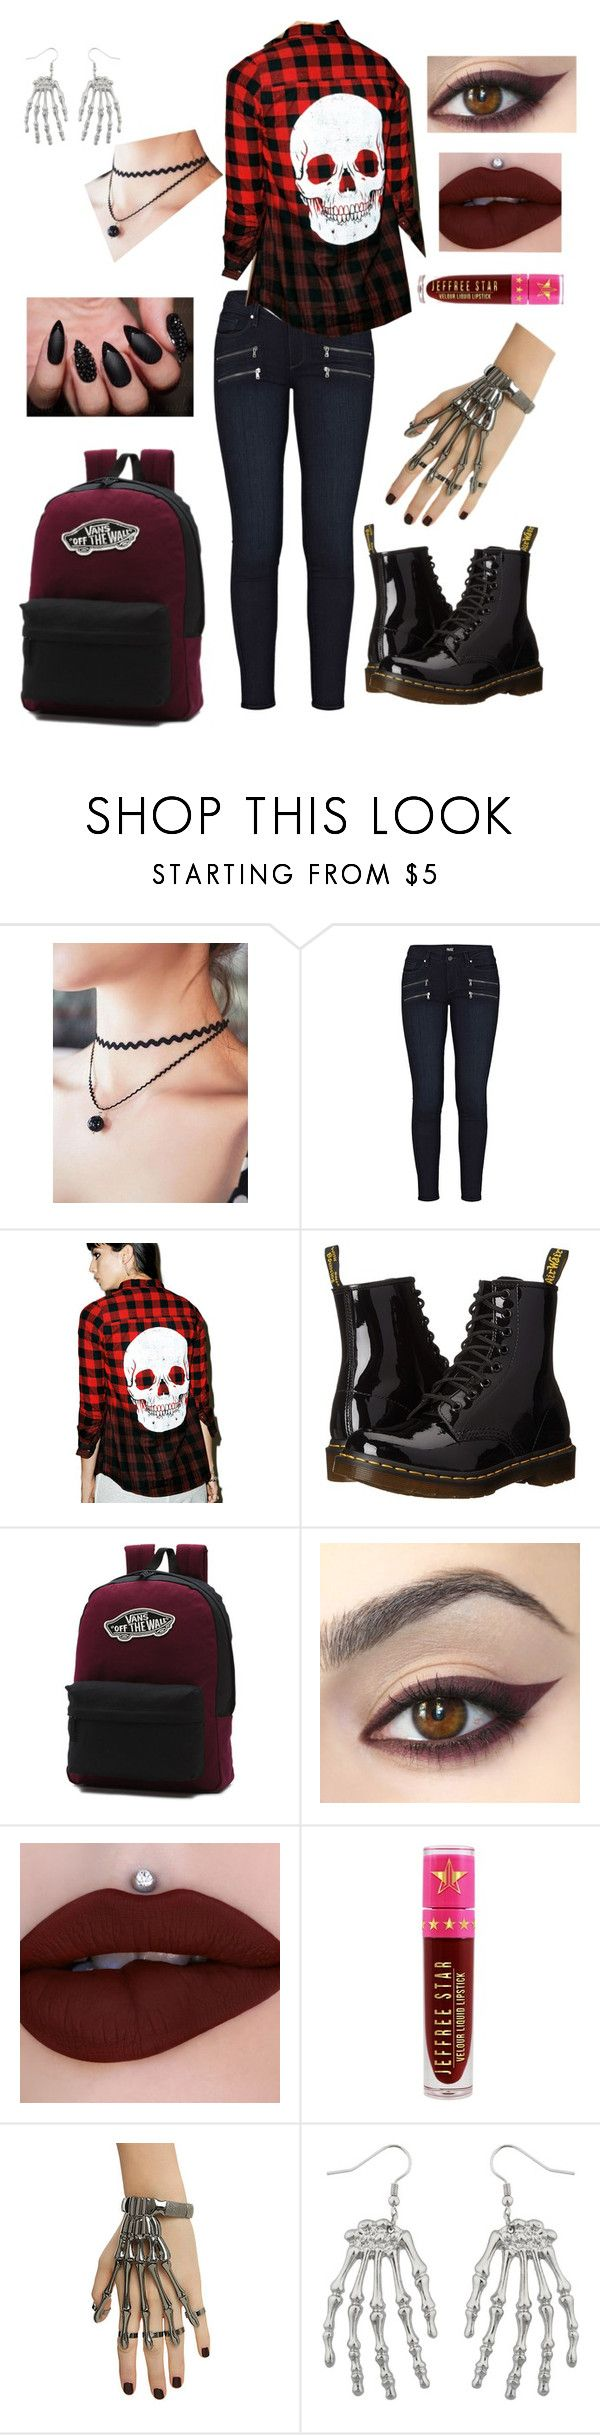 """""""Back to school again (With some Jeffree Star though! :))"""" by emo-roxanne ❤ liked on Polyvore featuring Paige Denim, Iron Fist, Dr. Martens, Vans, Jeffree Star and Hot Topic"""